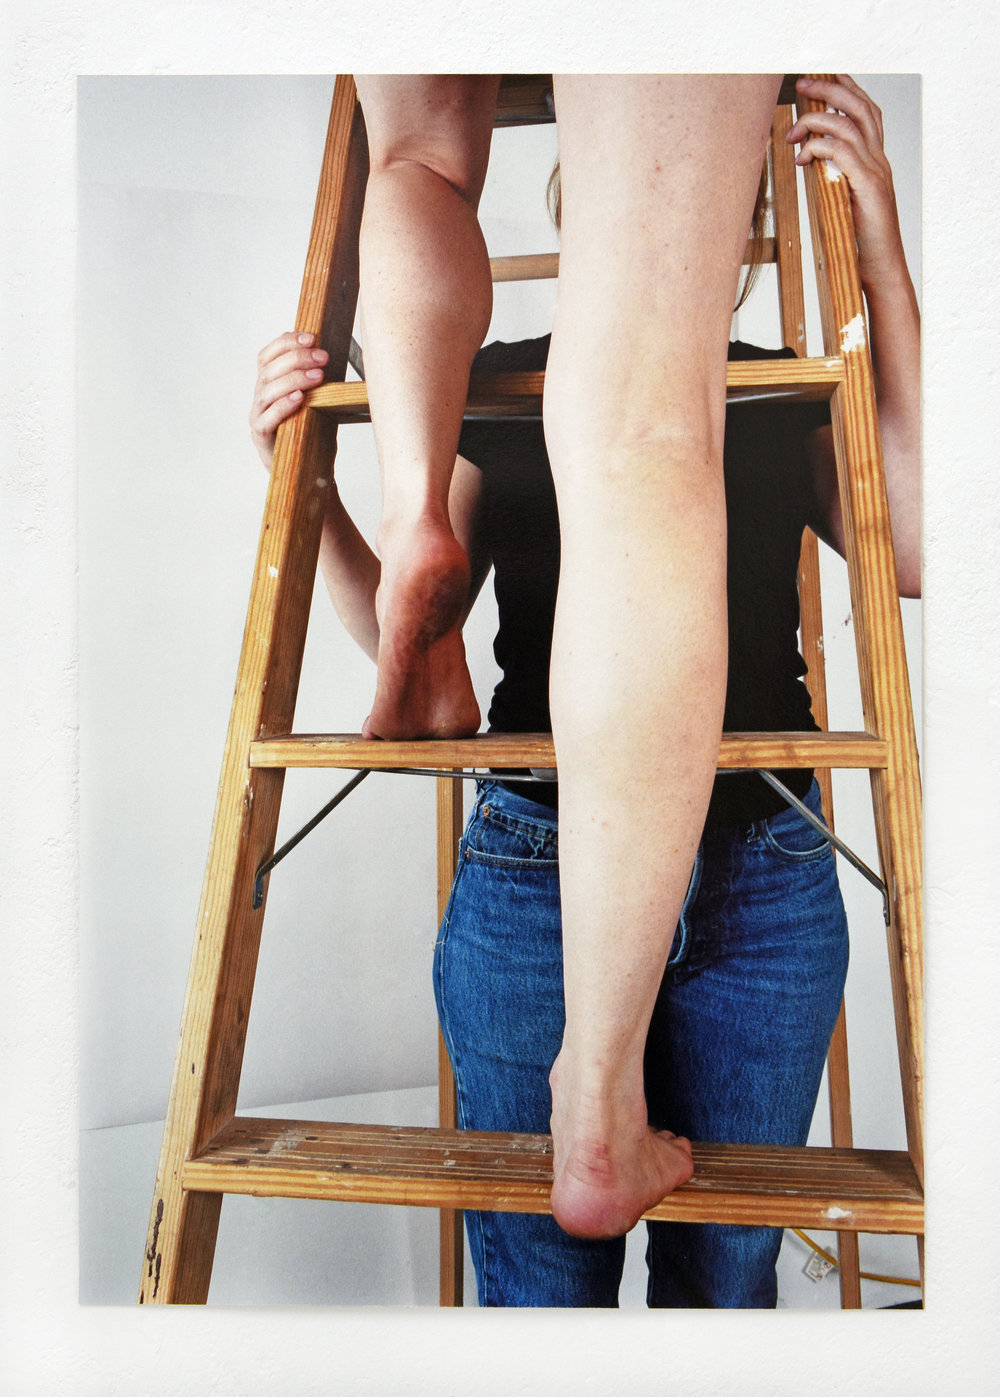 Ladder, Legs, Spot (Front/Back View) , 2016, inkjet print, 23 x 16 inches